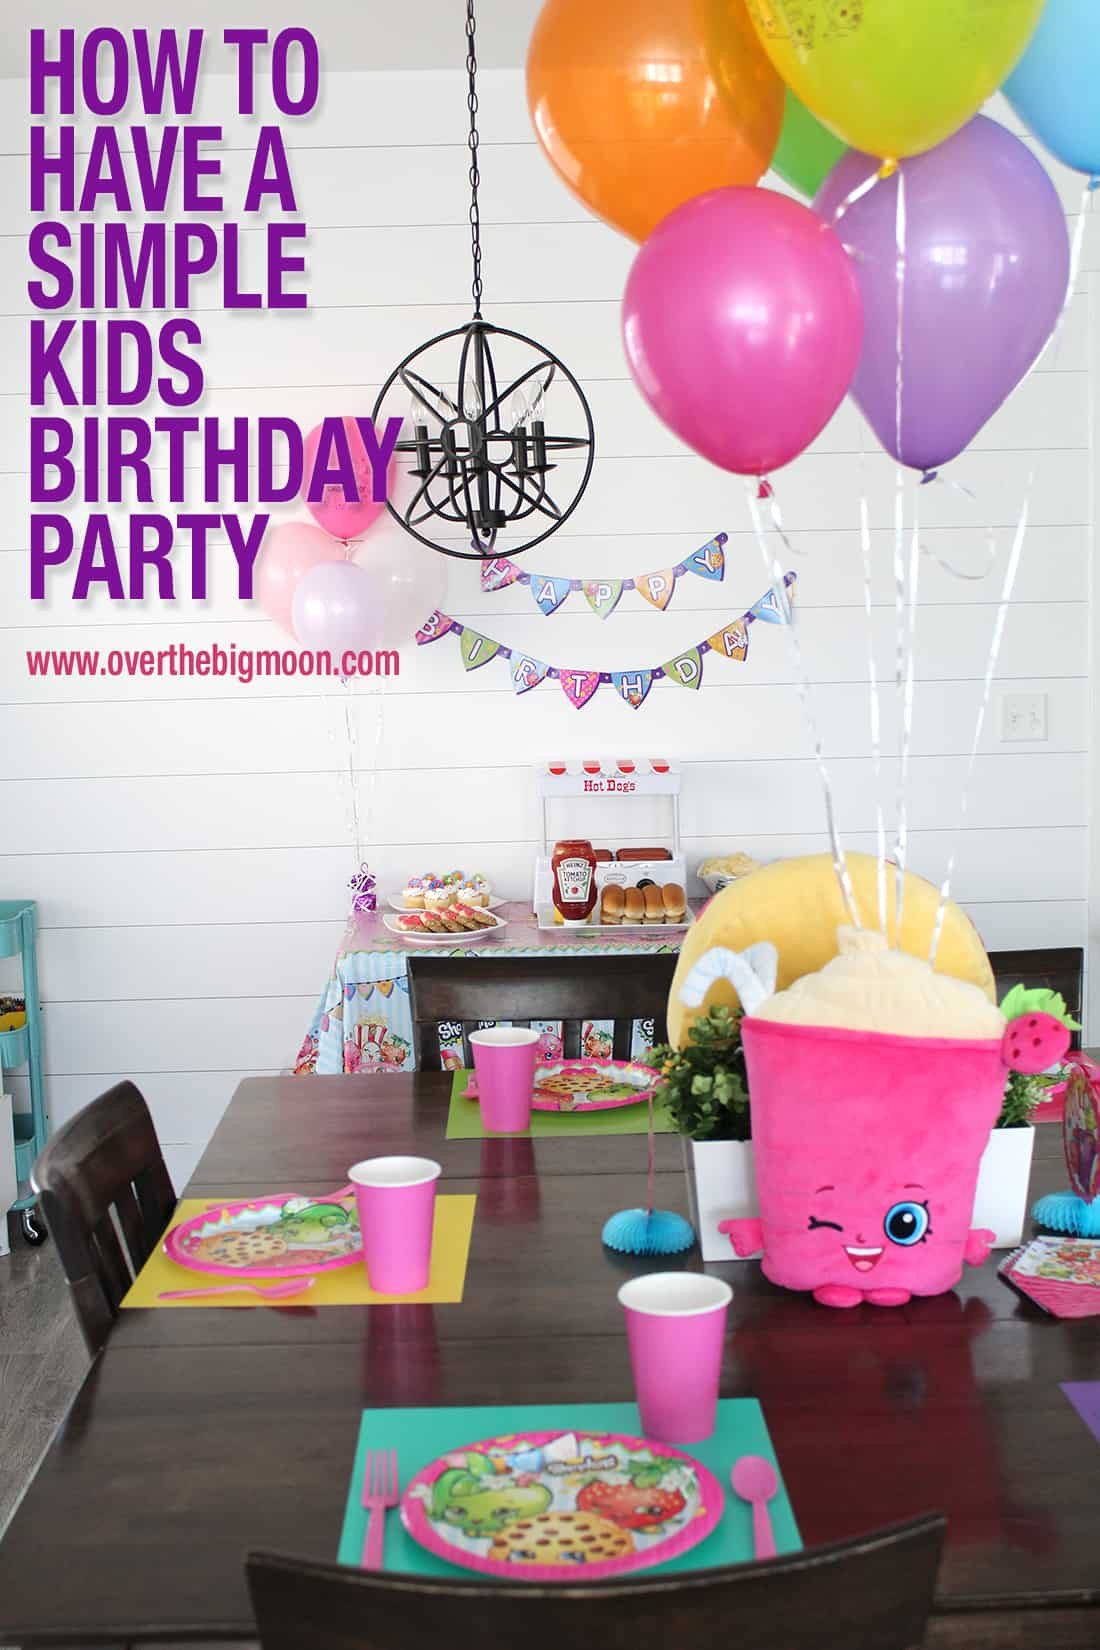 Kids Birthday Party Decoration Ideas  How to Have a Simple Kids Birthday Party Over The Big Moon